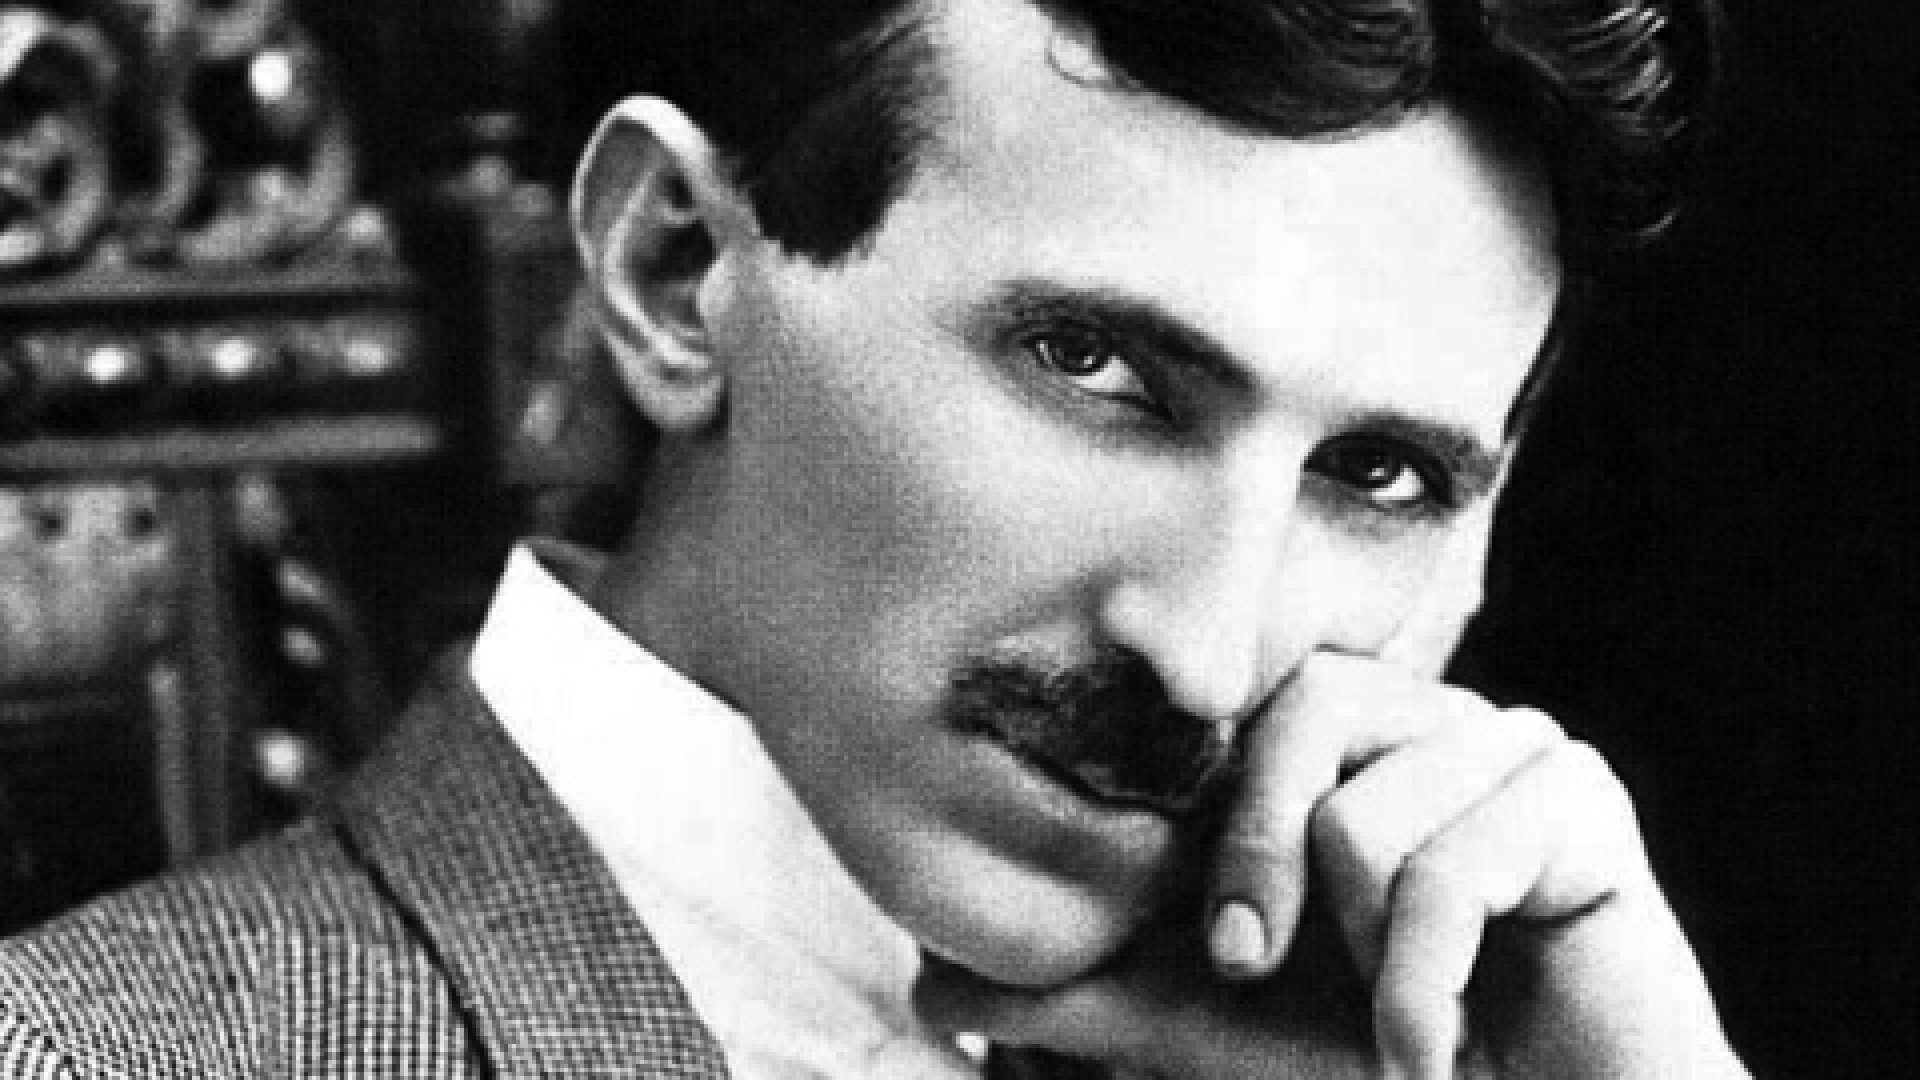 WATCH: If Nikola Tesla Pitched Silicon Valley VCs